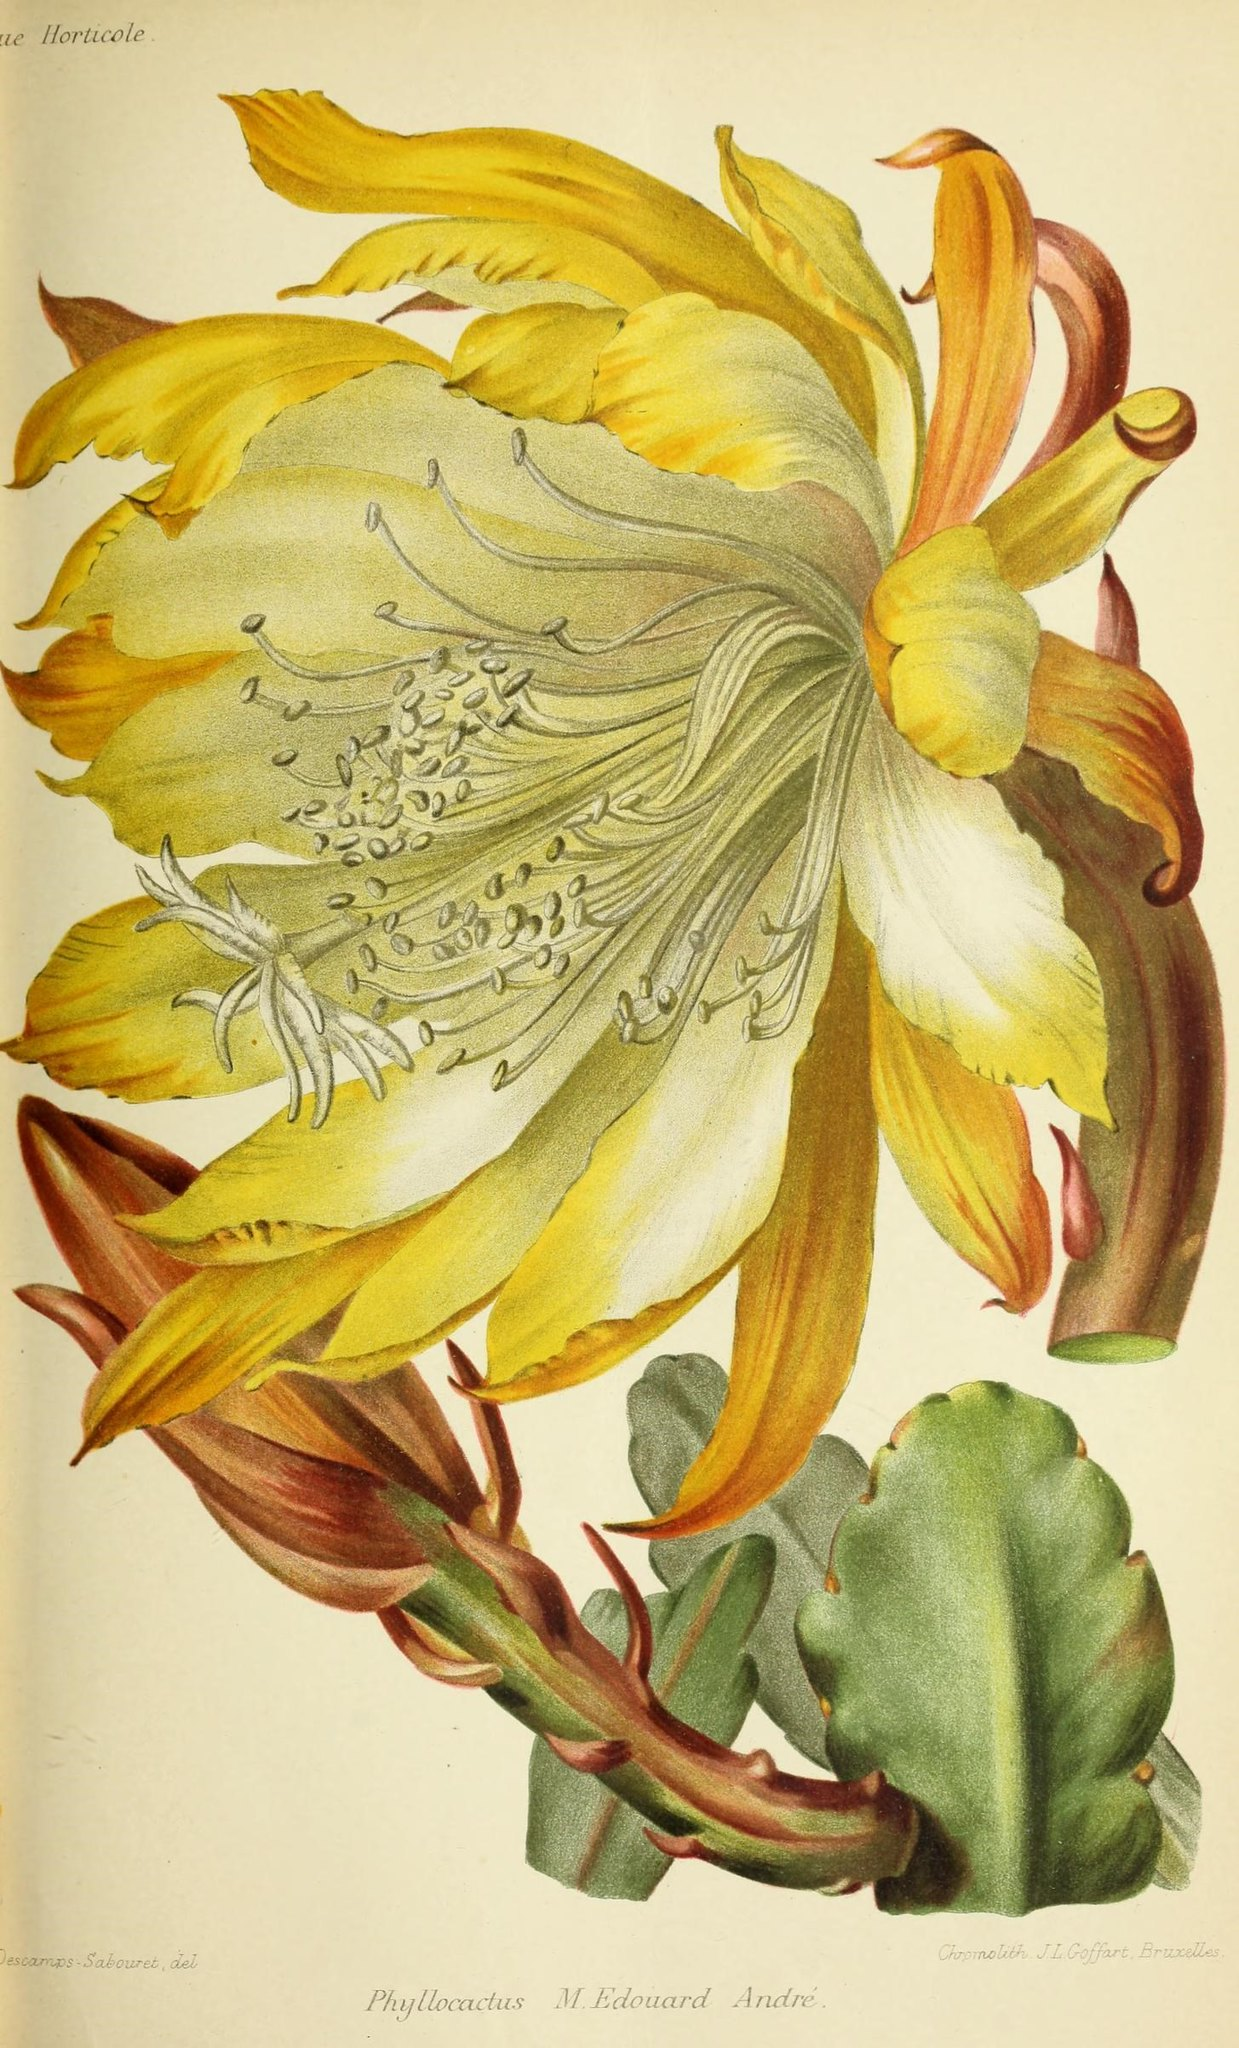 Illustration of a cactus with a yellow flower.